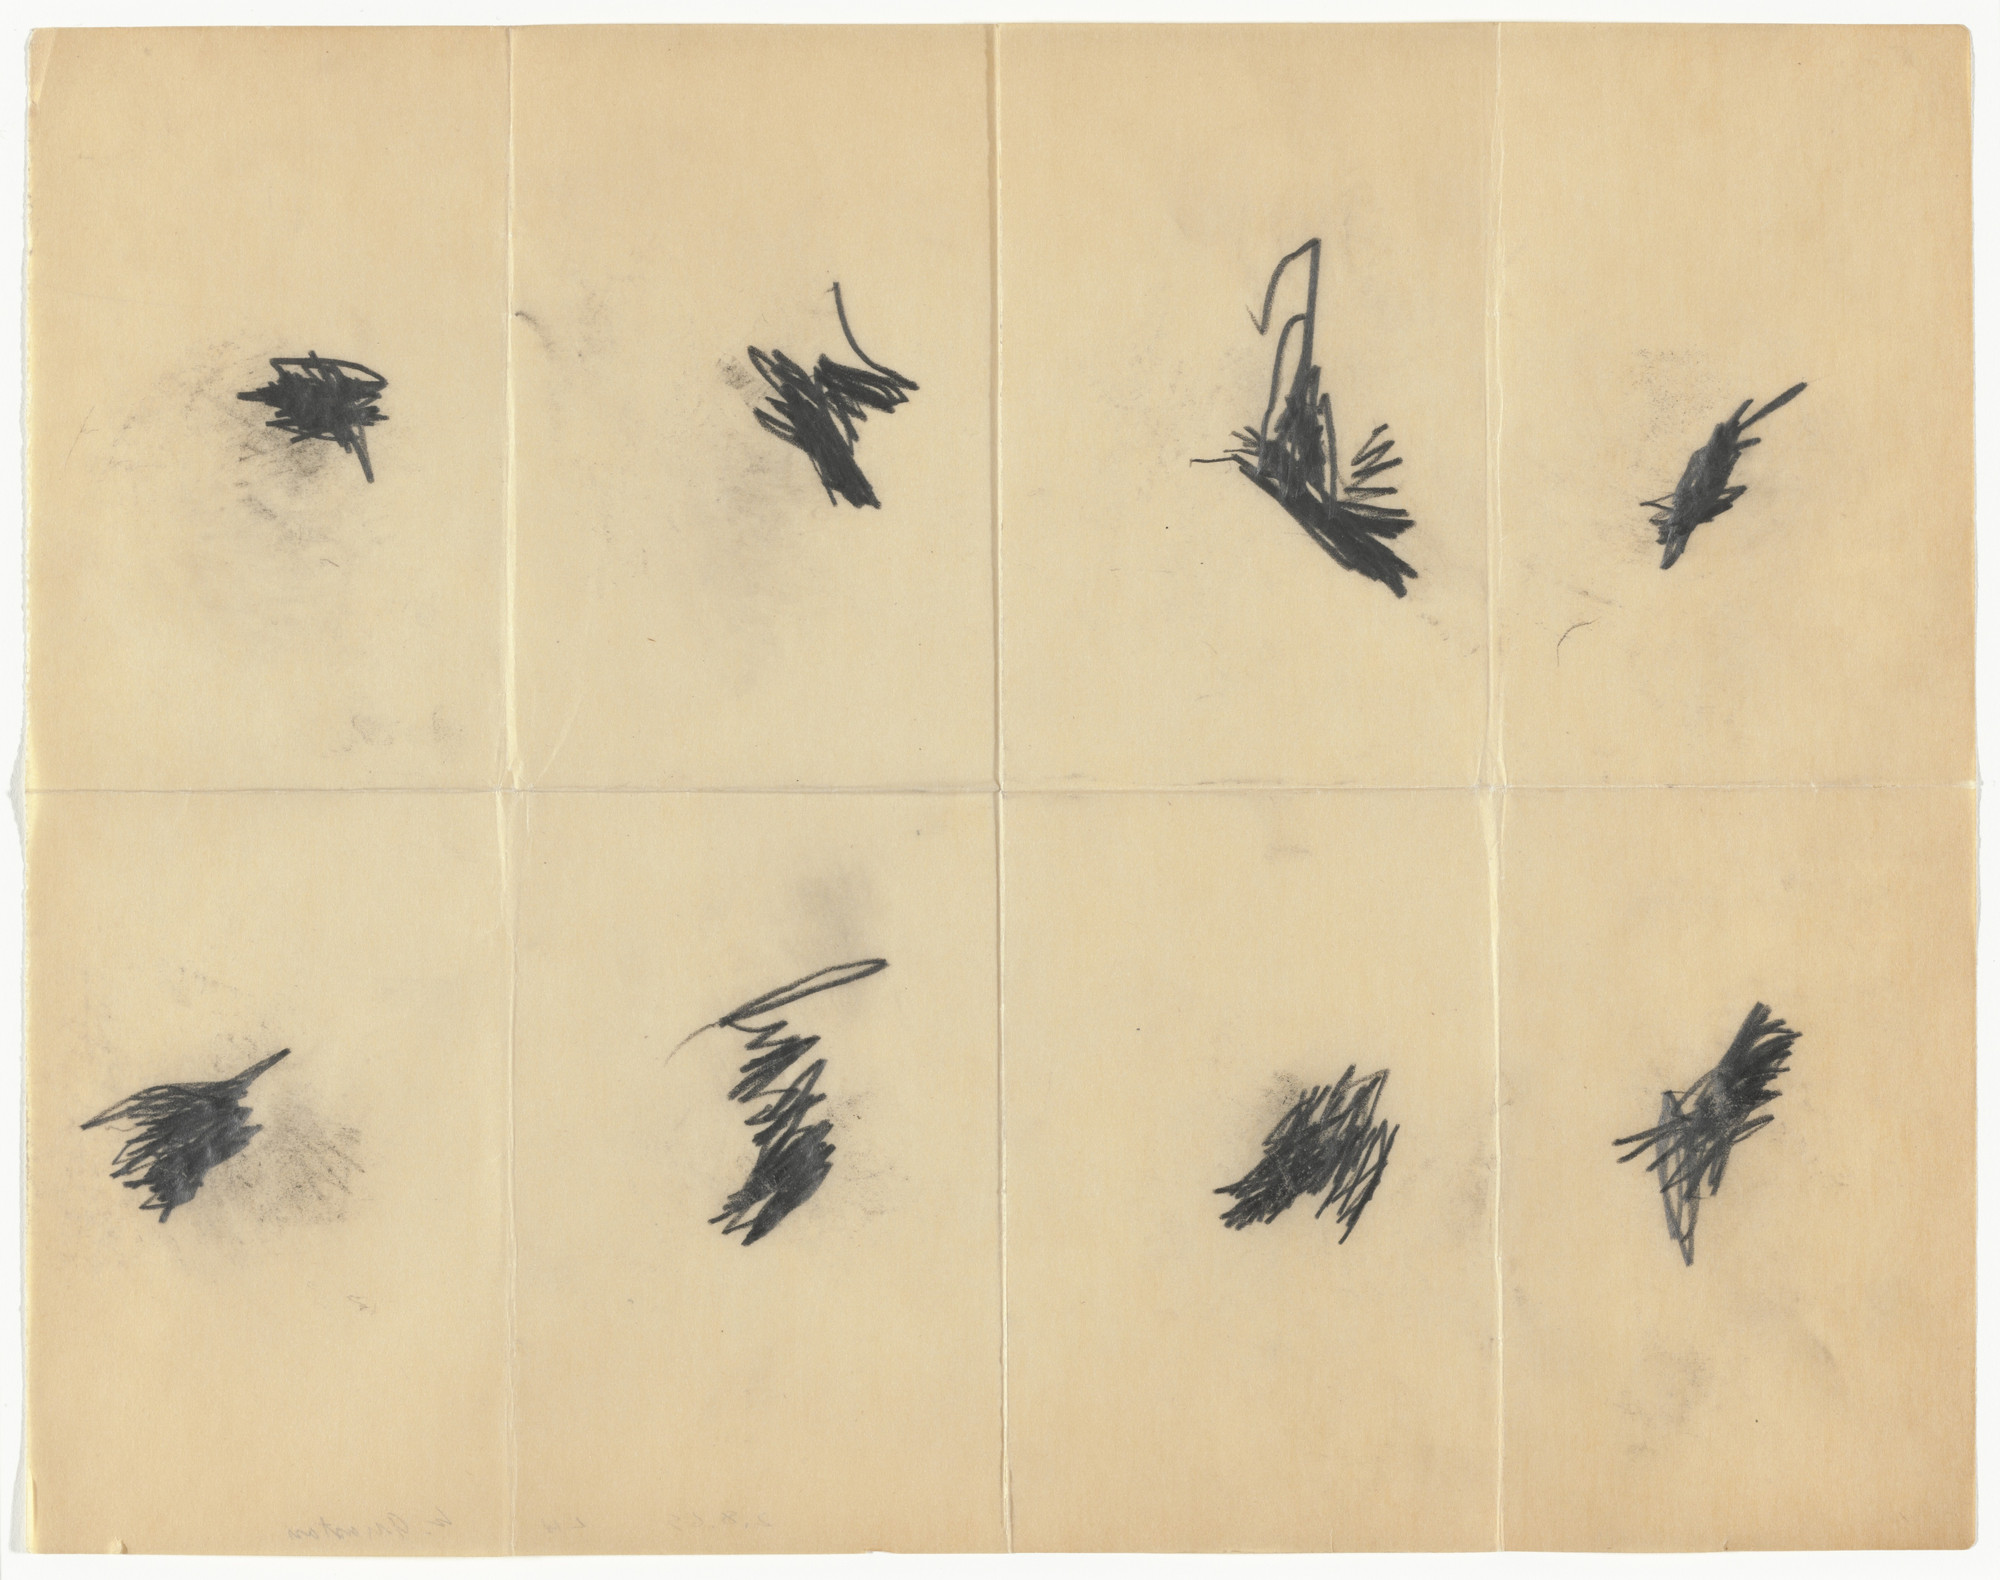 William Anastasi. Untitled (Pocket Drawings). 1969